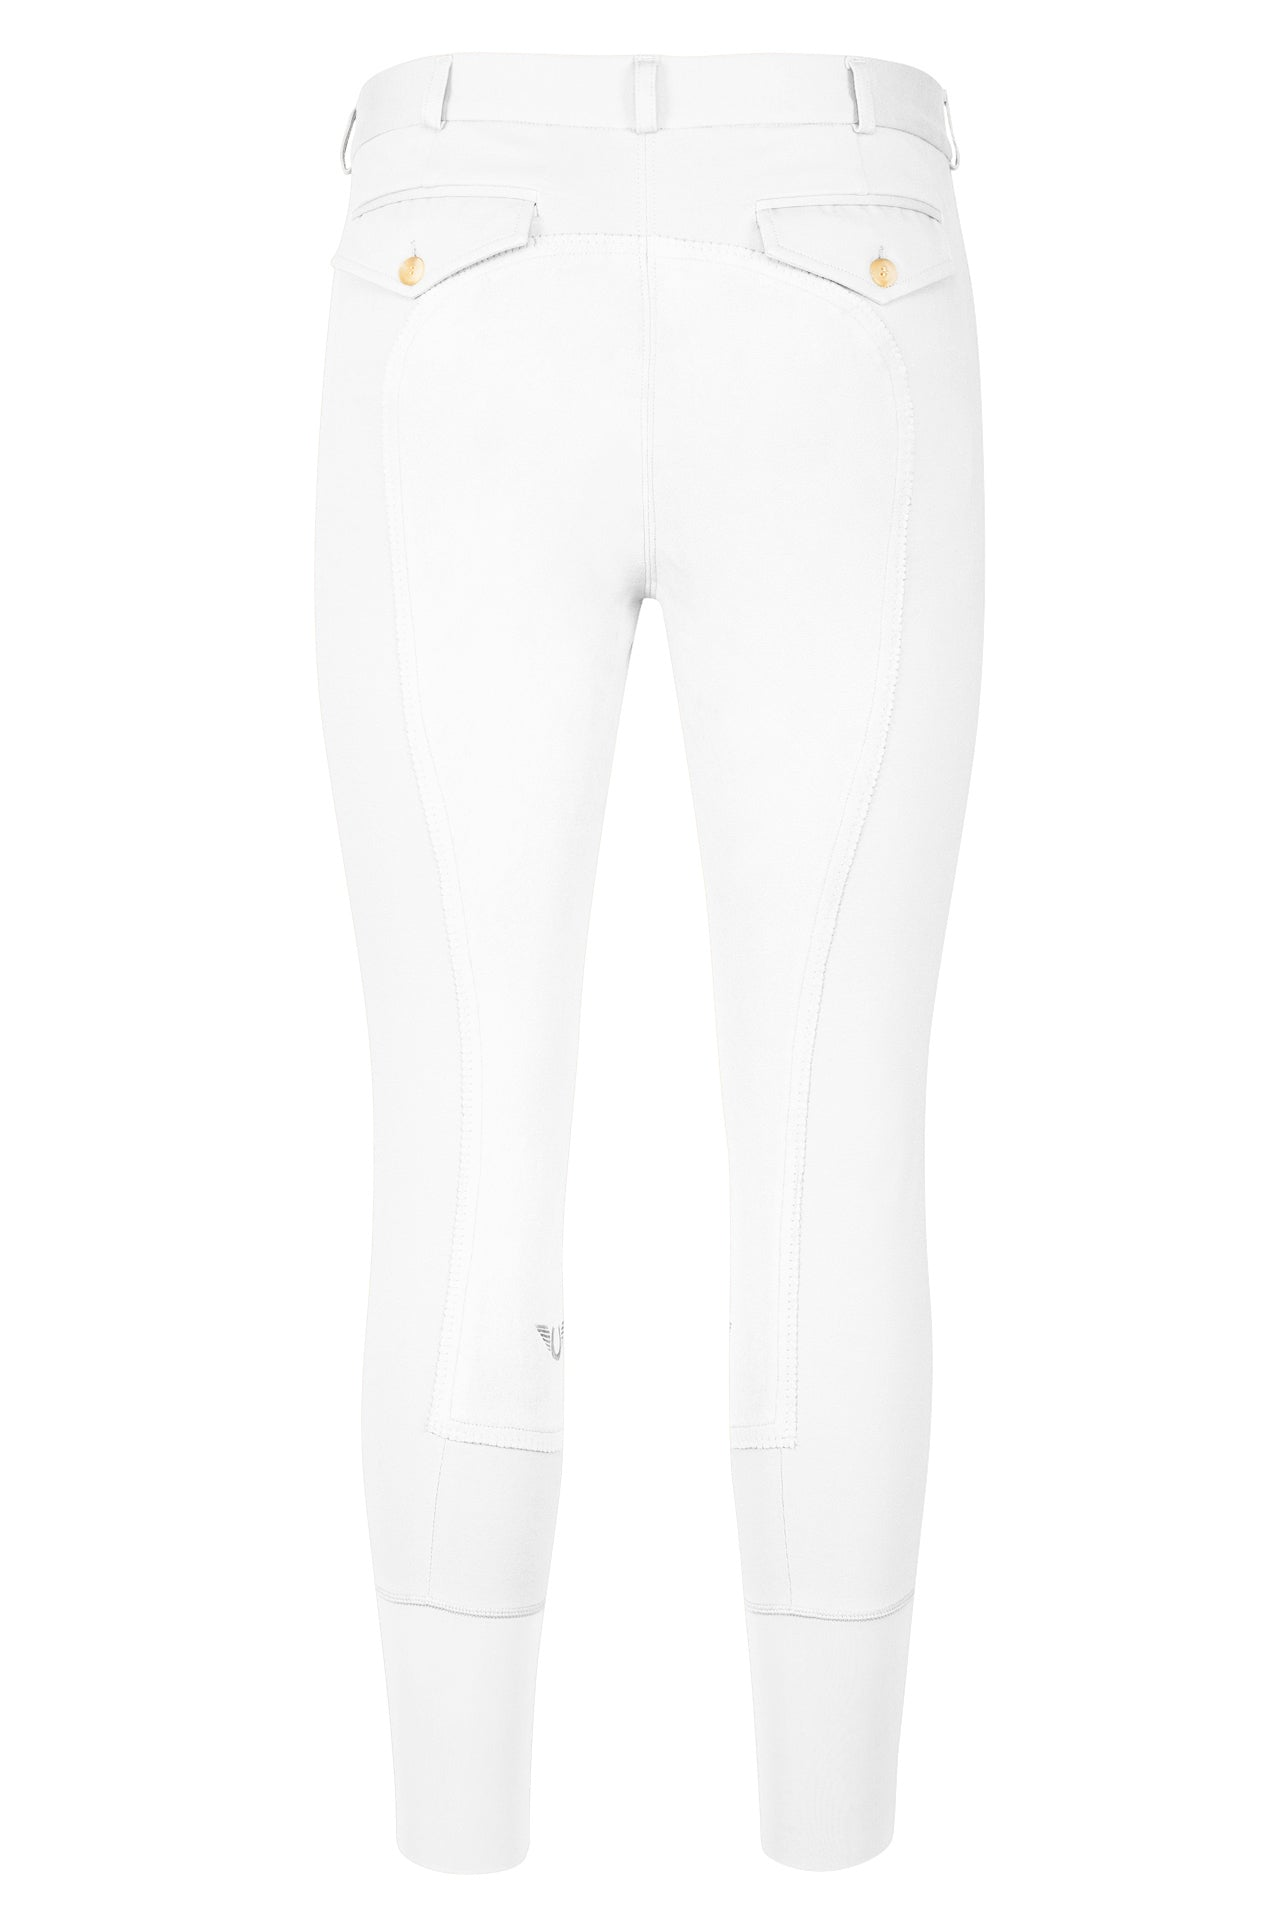 Men's Full Seat Patrol Breeches